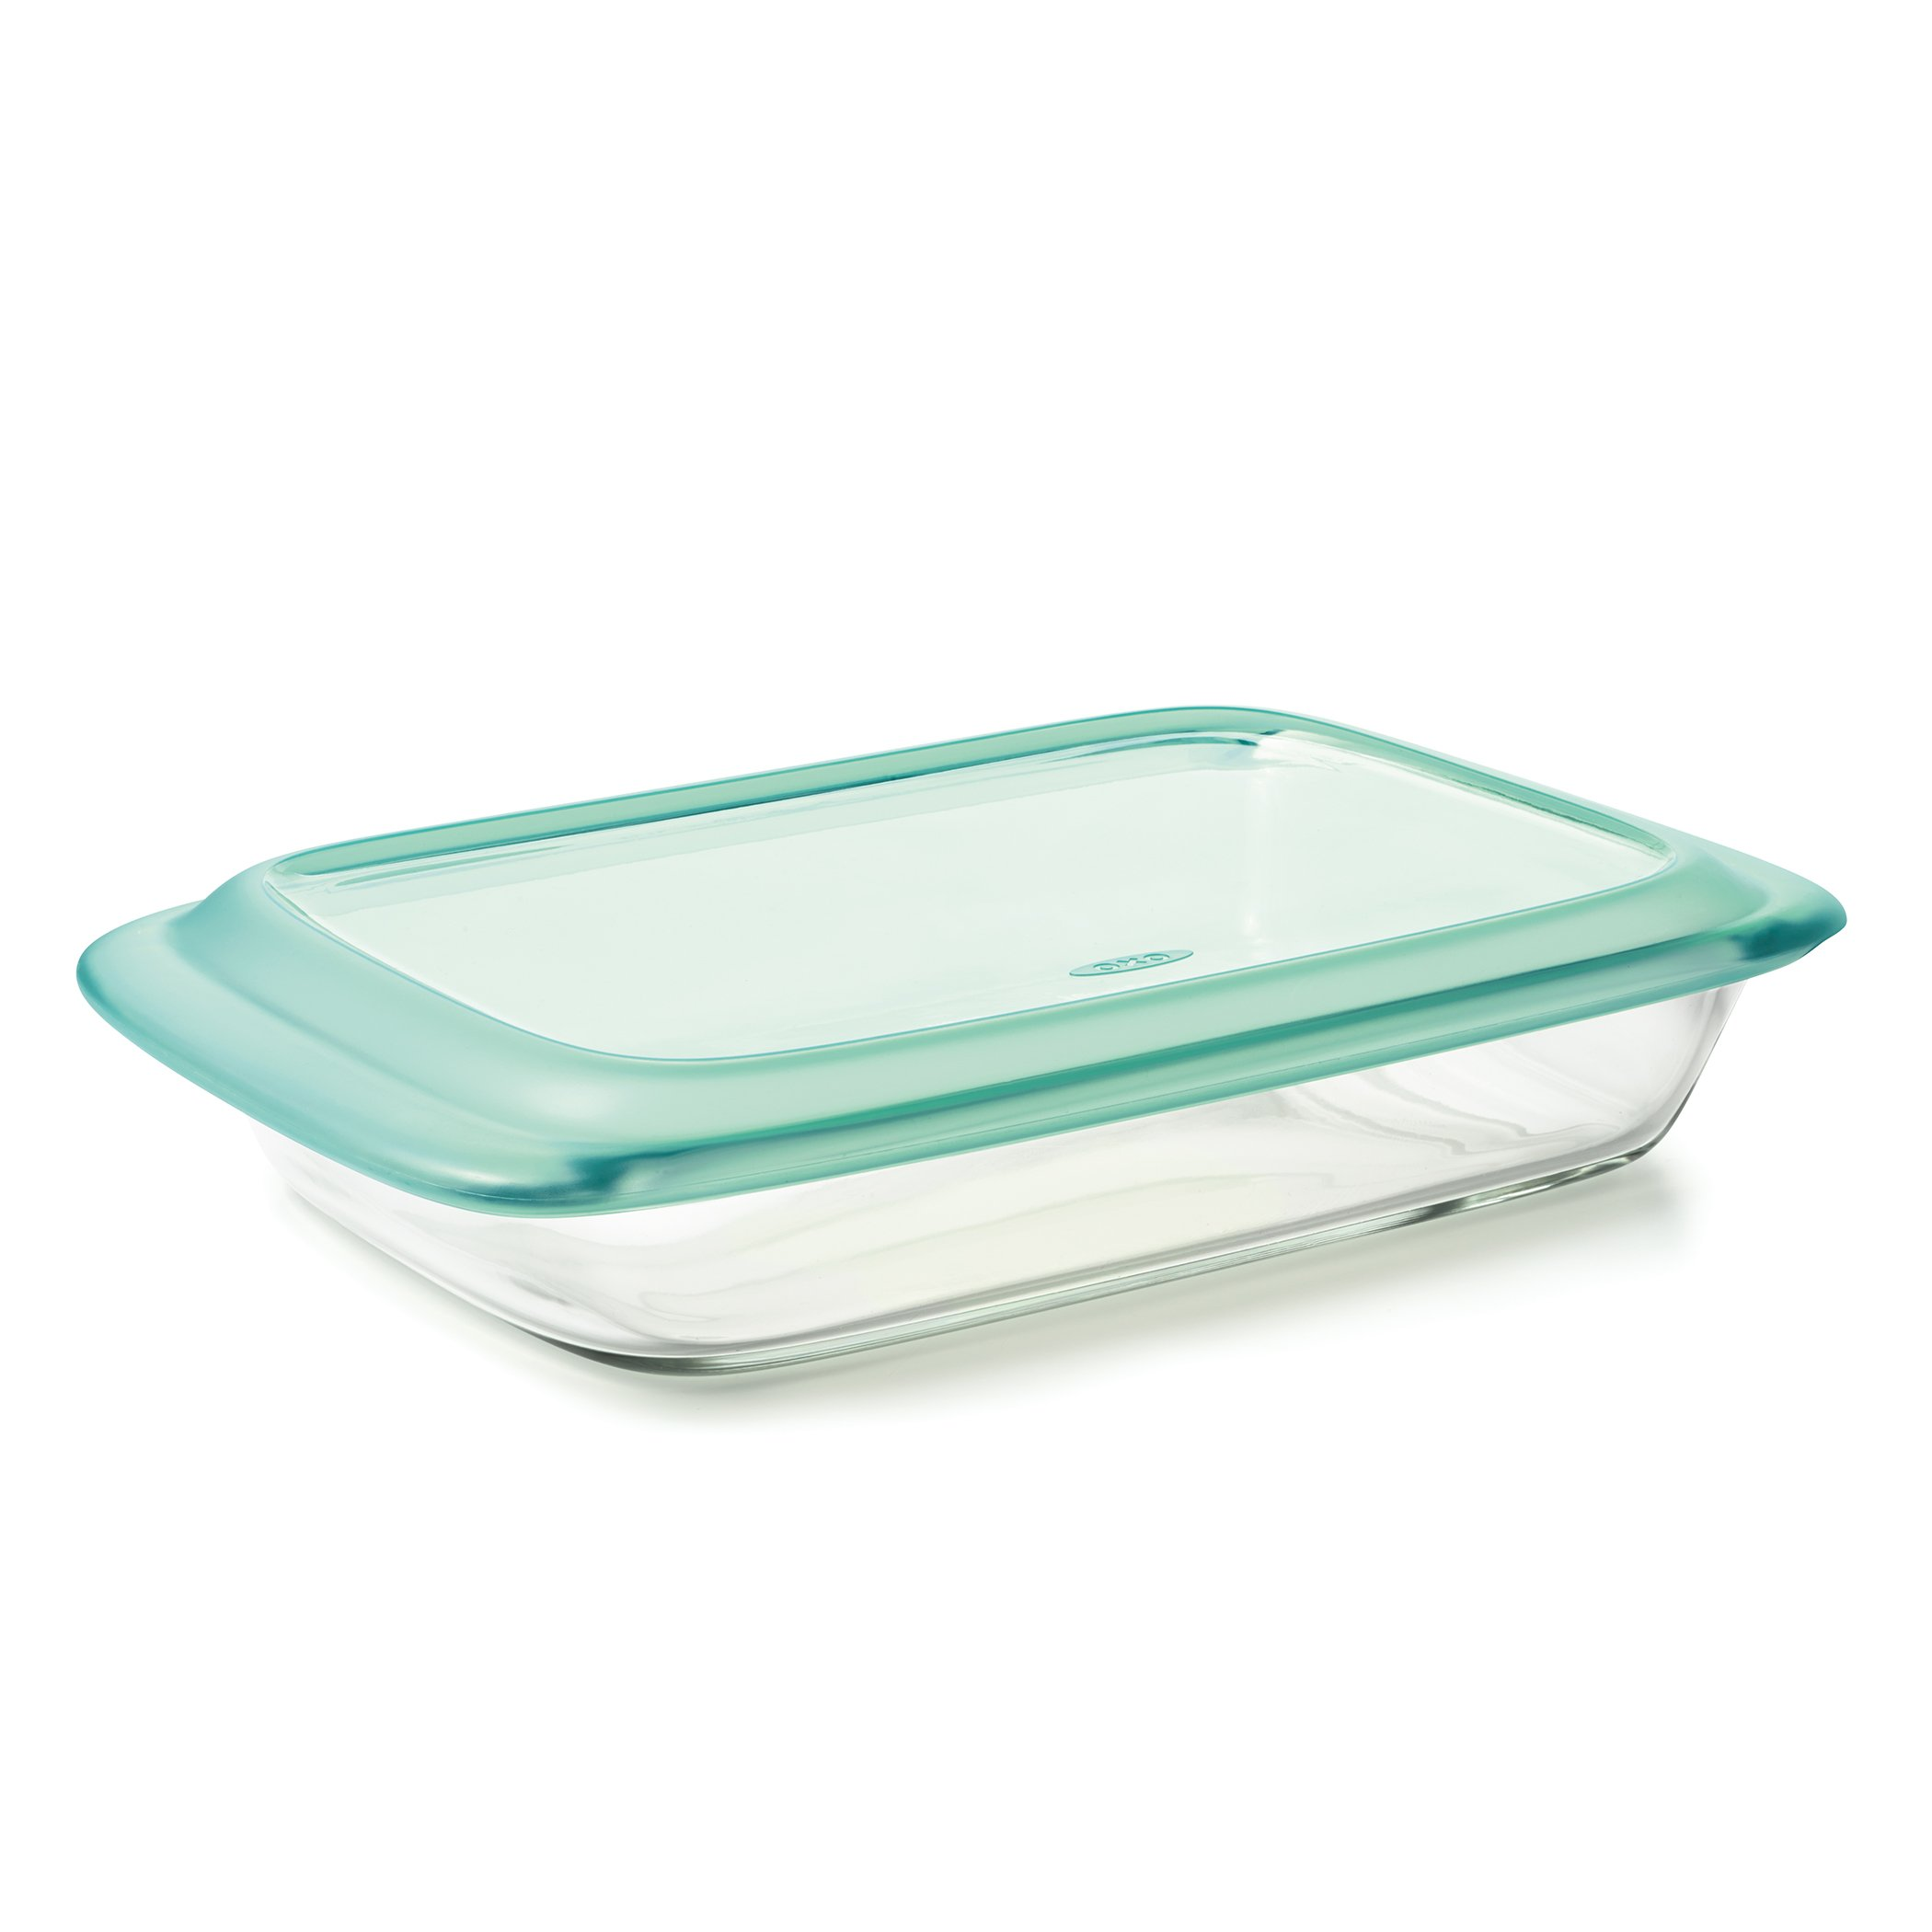 OXO Good Grips Freezer-to-Oven Safe 3 Qt Glass Baking Dish with Lid, 9 x 13 by OXO (Image #2)